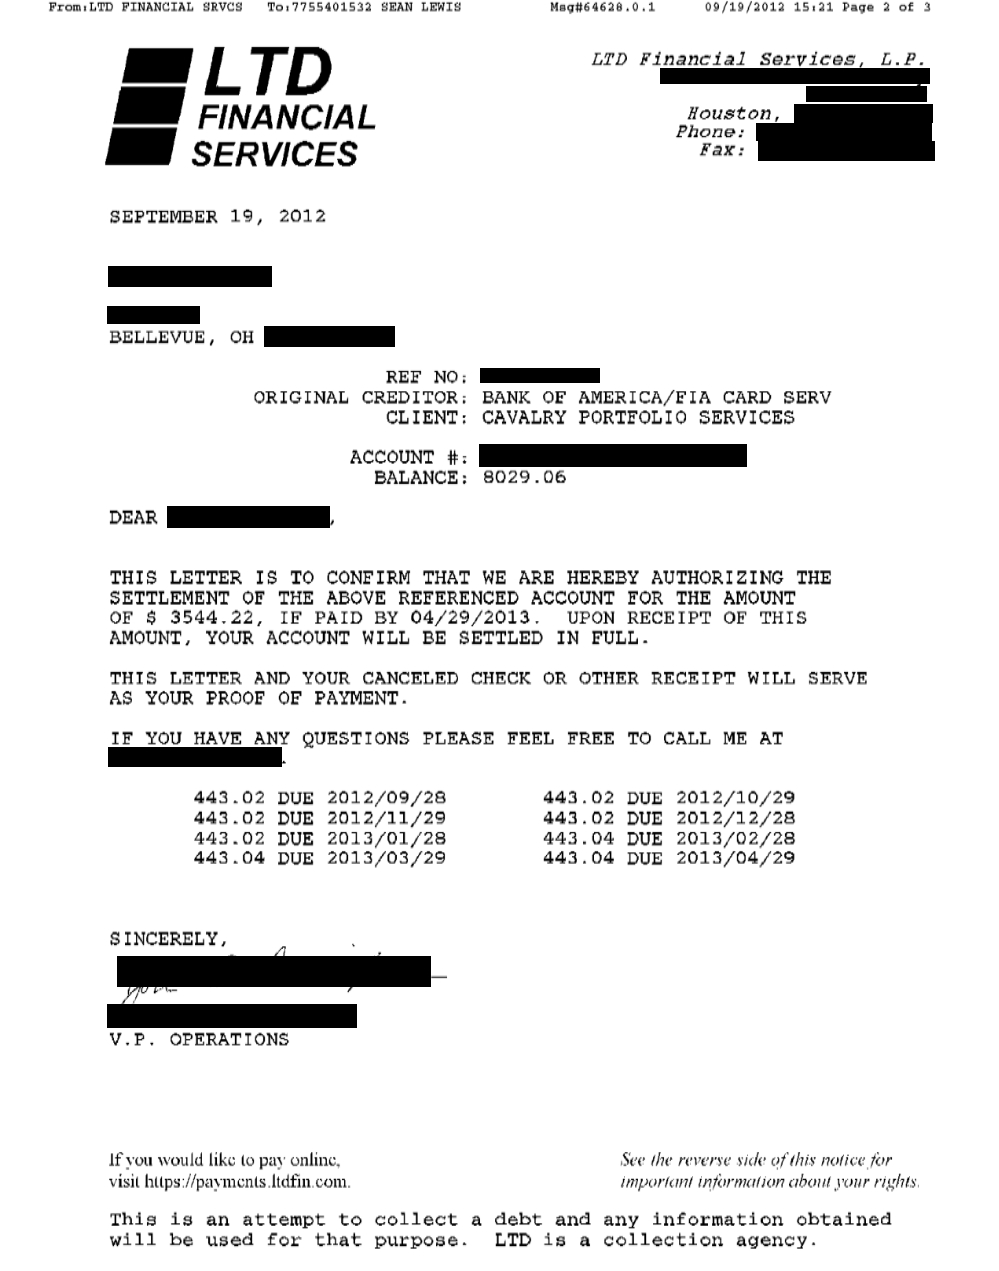 Saved $3363.63 with Bank Of America(cavalry) for Client TF